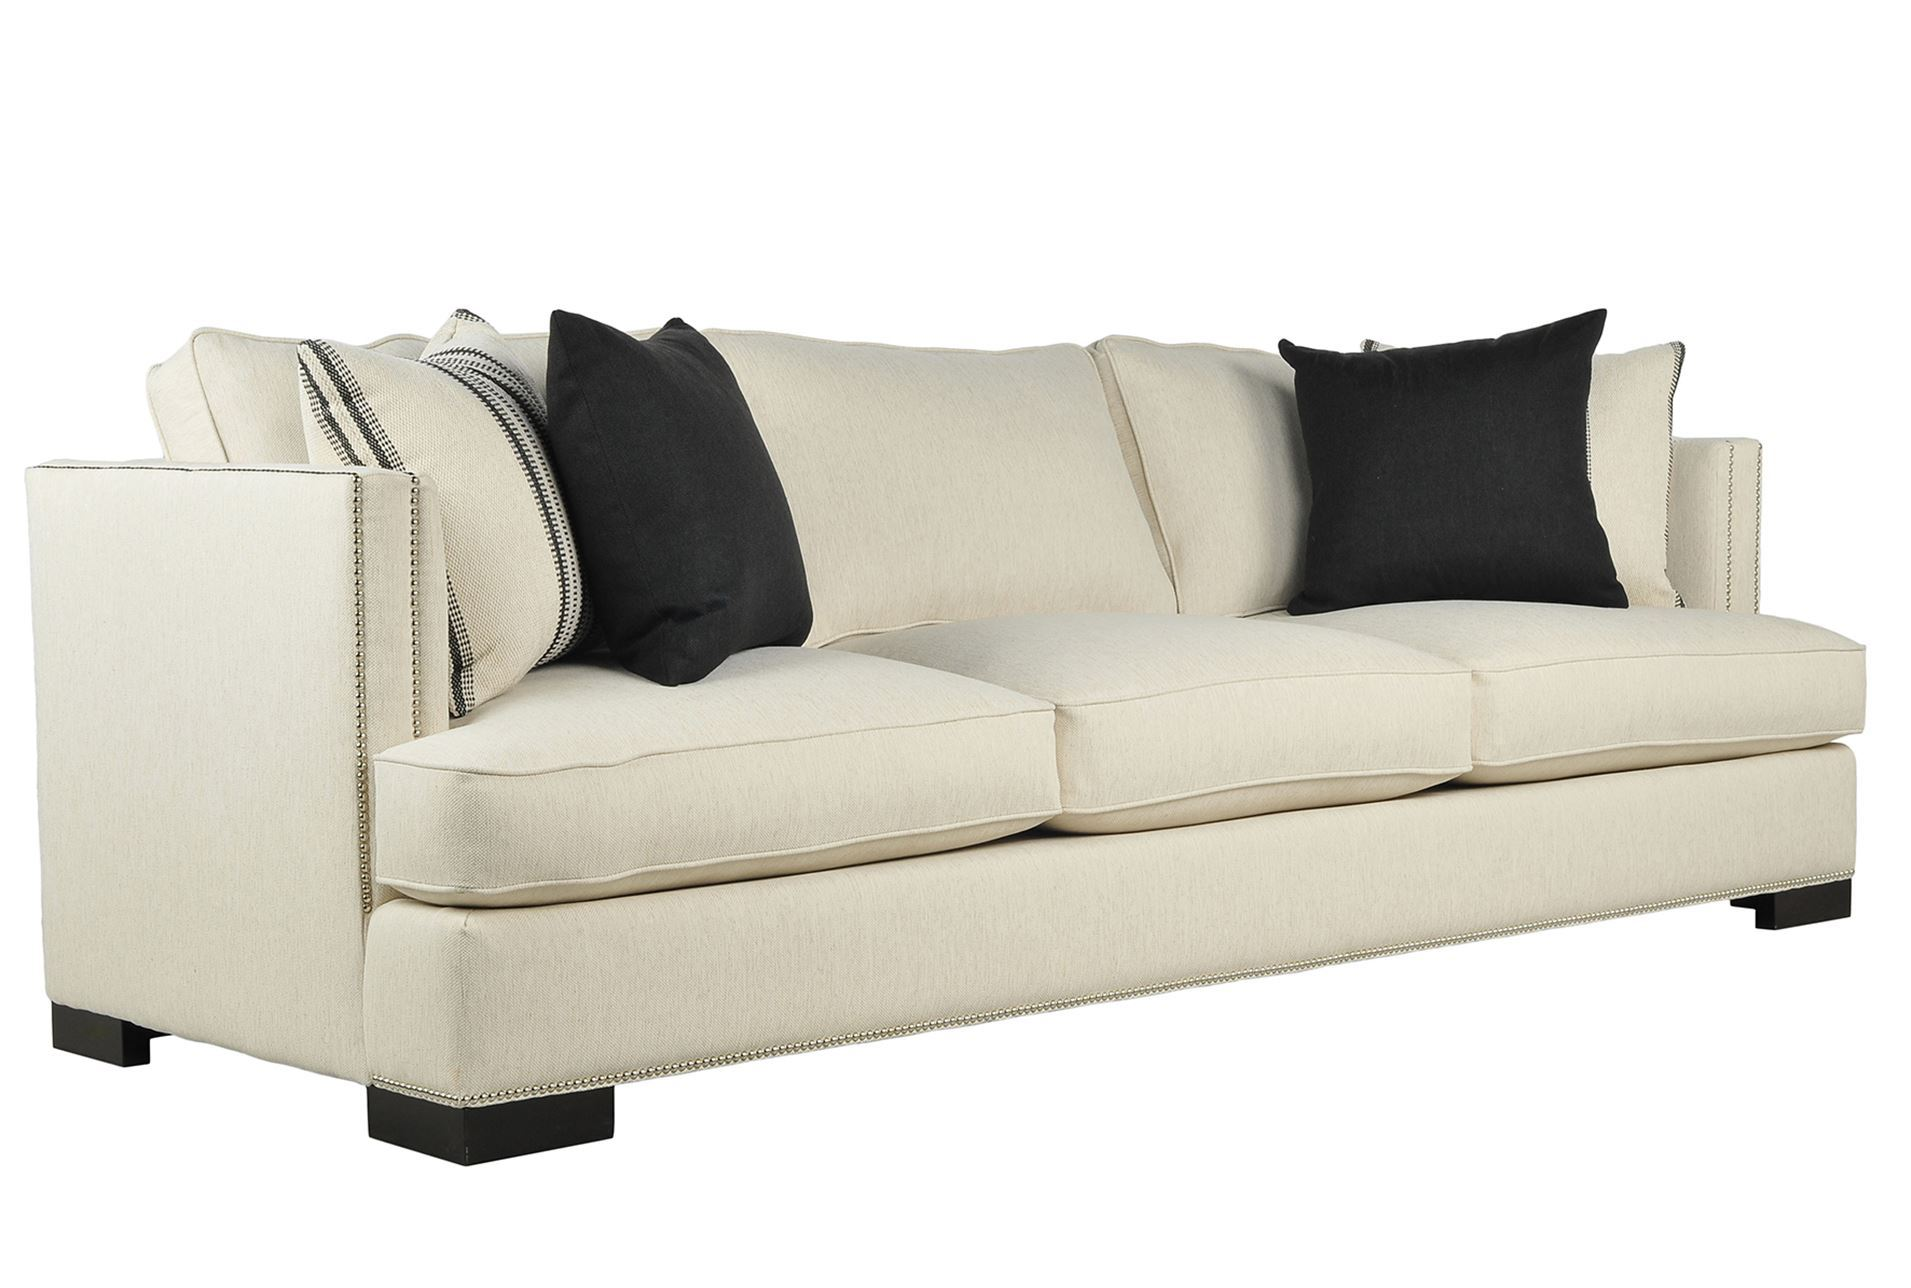 sofa bed in mumbai sofas nyc midtown buy 3 seater chase india at onlinesofadesign